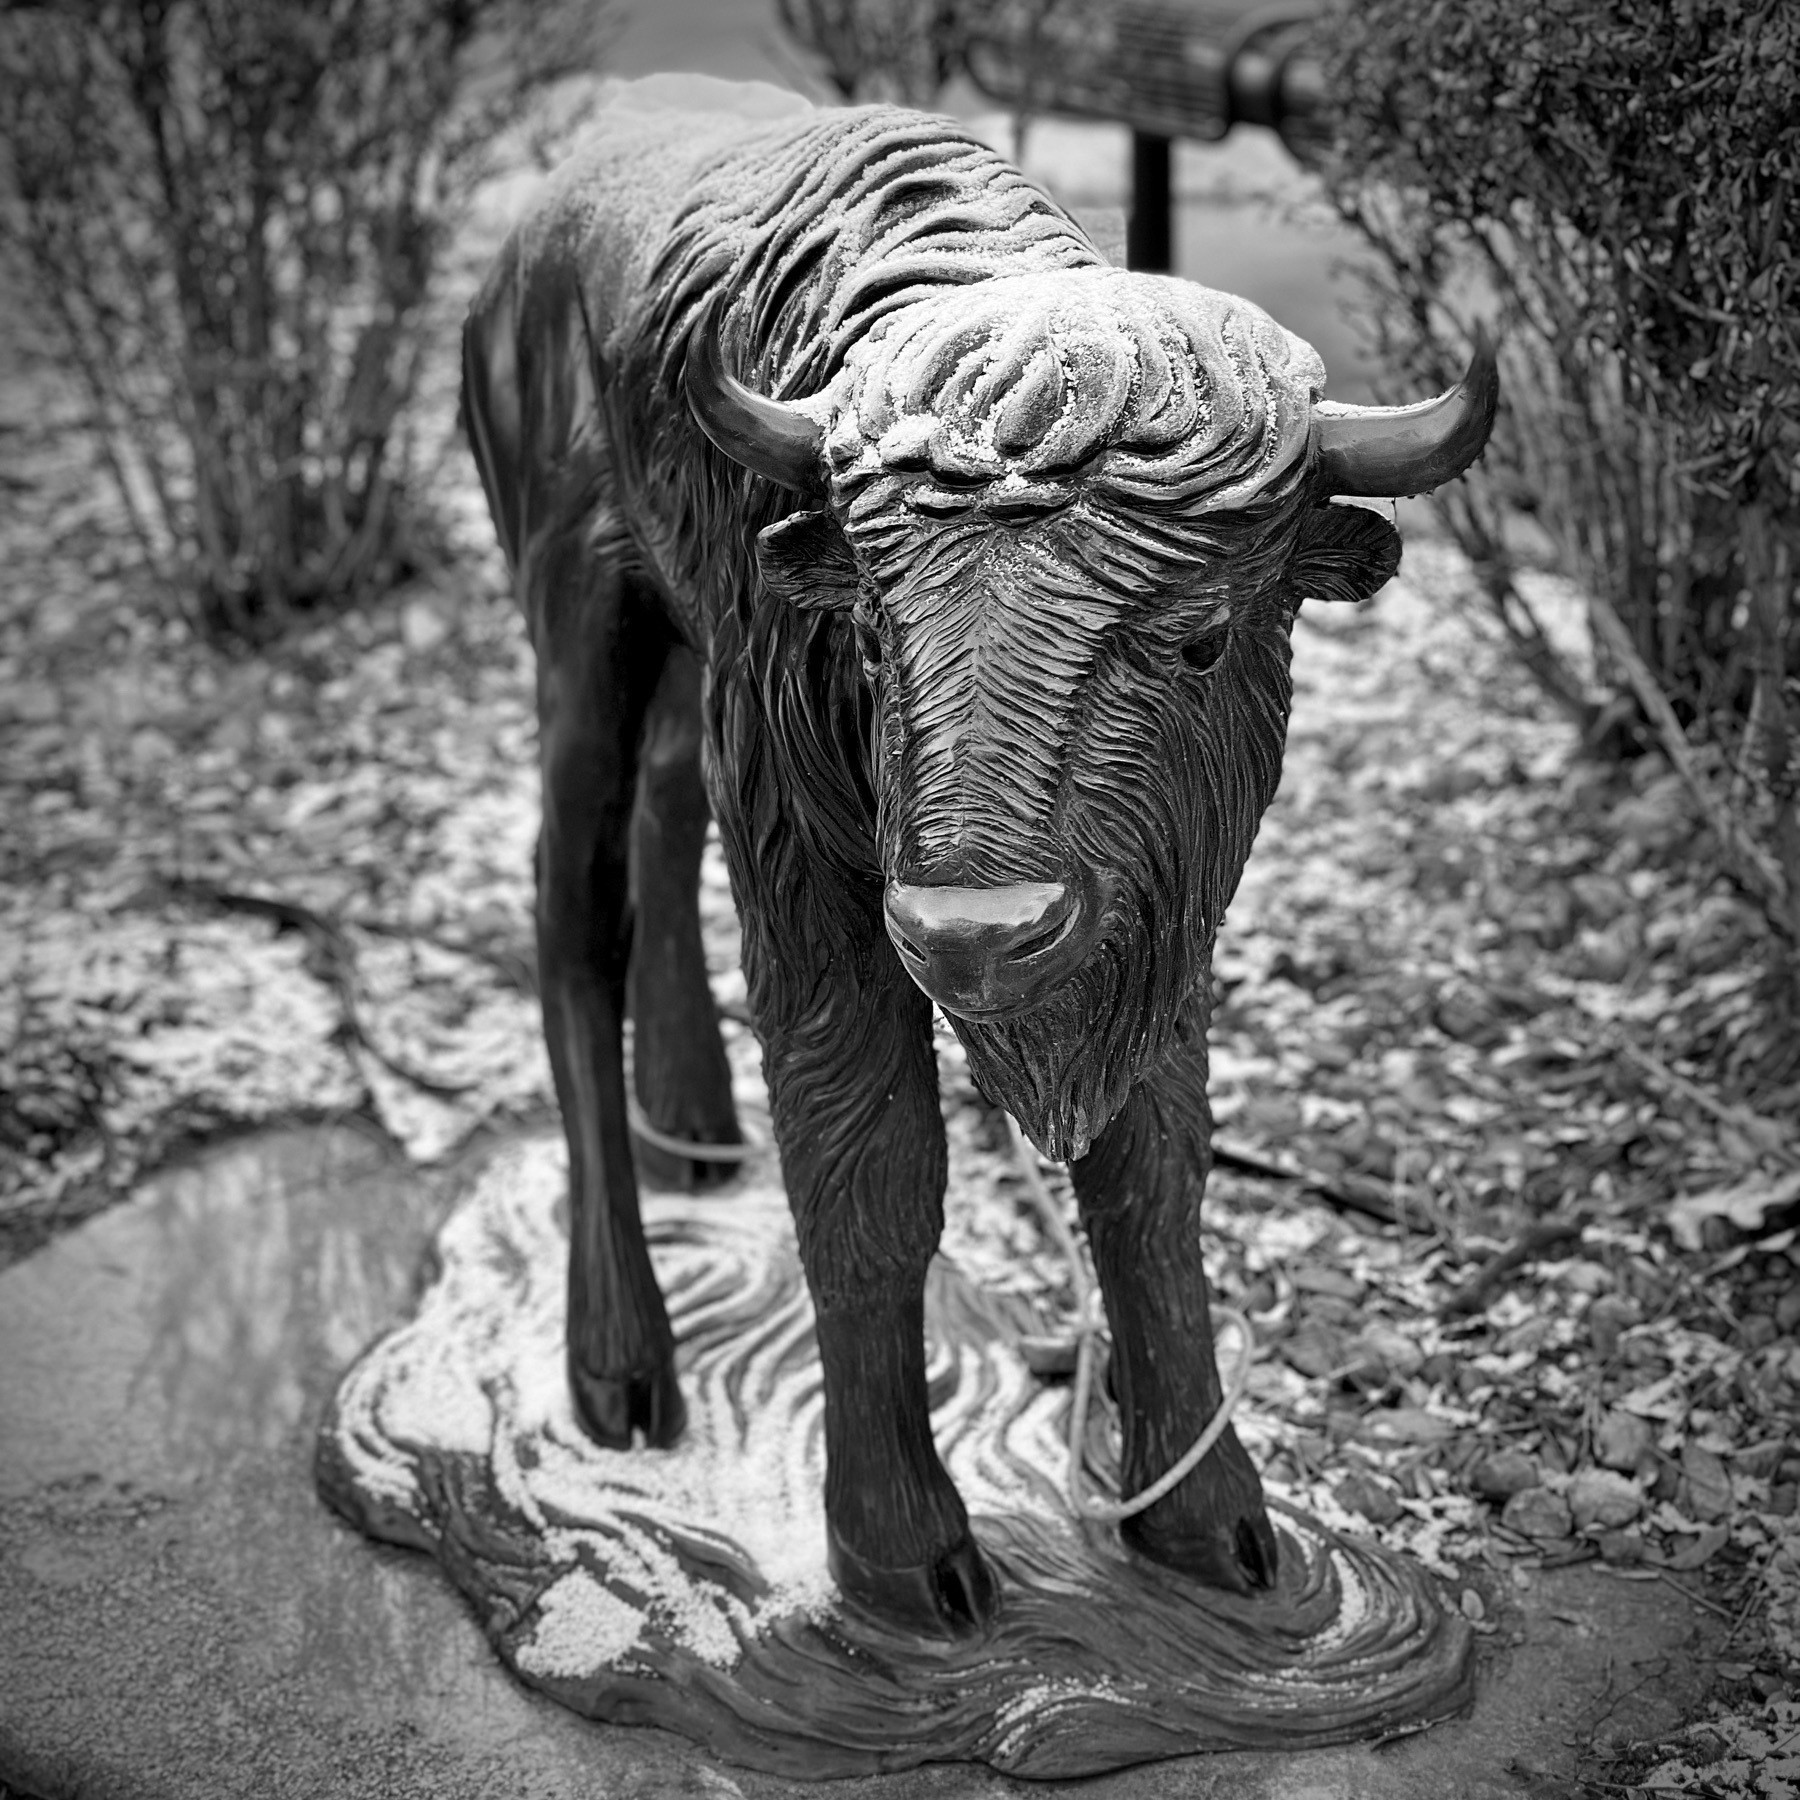 Small metal statue of a baby buffalo, with a light dusting of snow.